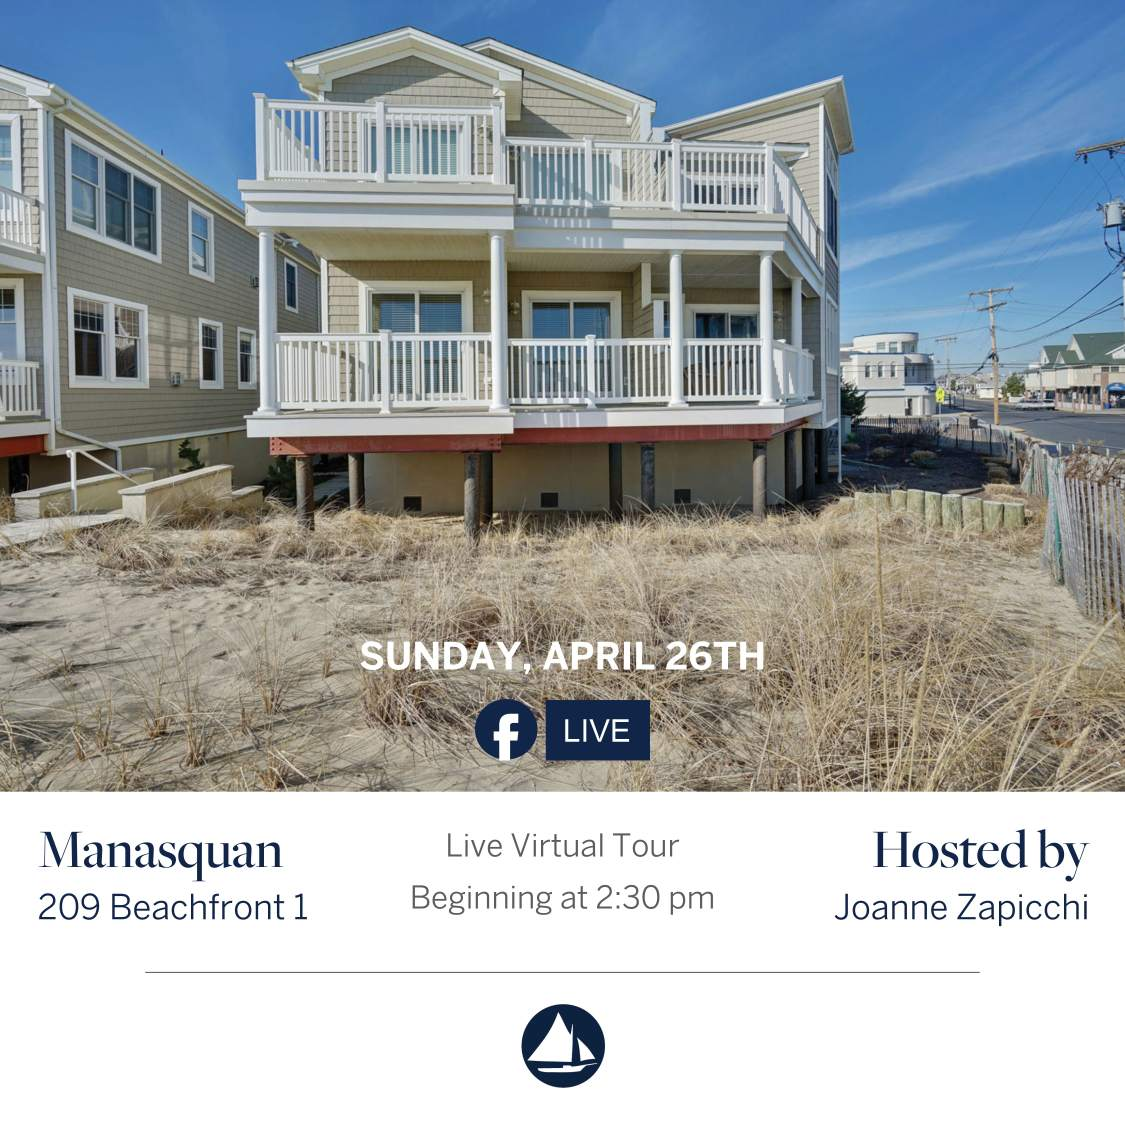 209 Beachfront 1 FB Live 4/26/20